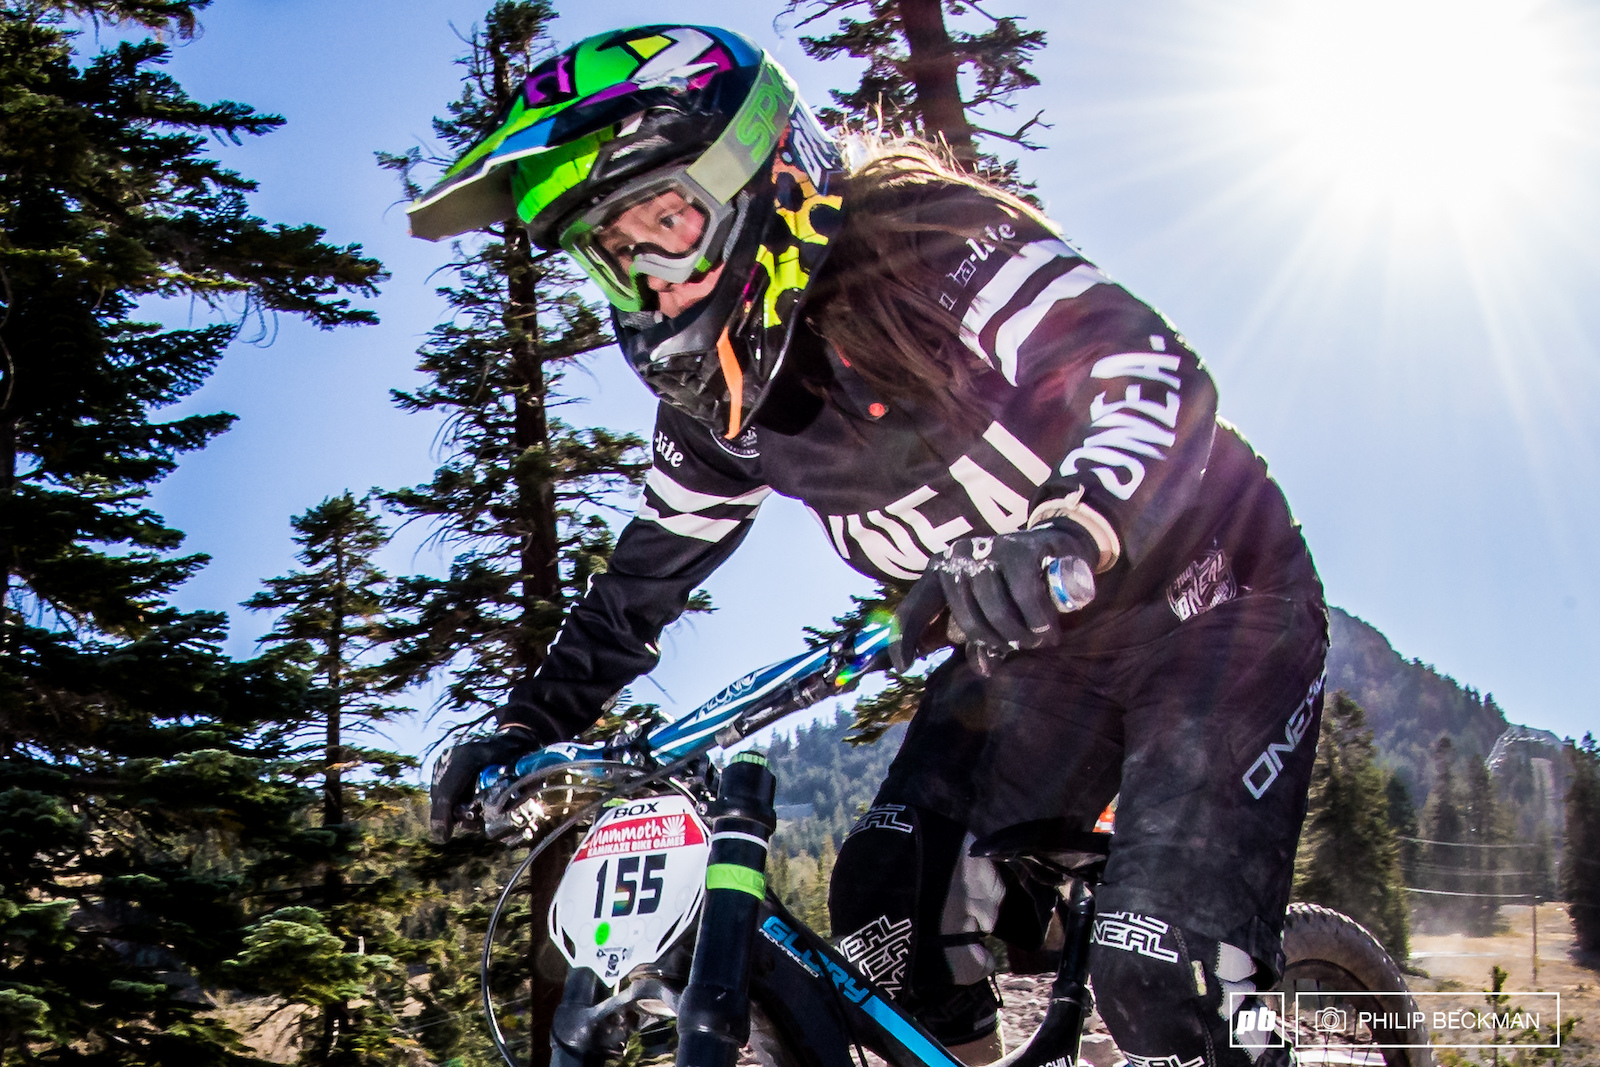 Fresh off a silver medal performance in the Junior Women s class at last weekend s World Championships 16-year-old Samantha Kingshill College Cyclery O Neal is looking to capture the Pro GRT Pro Women s title at KBG.